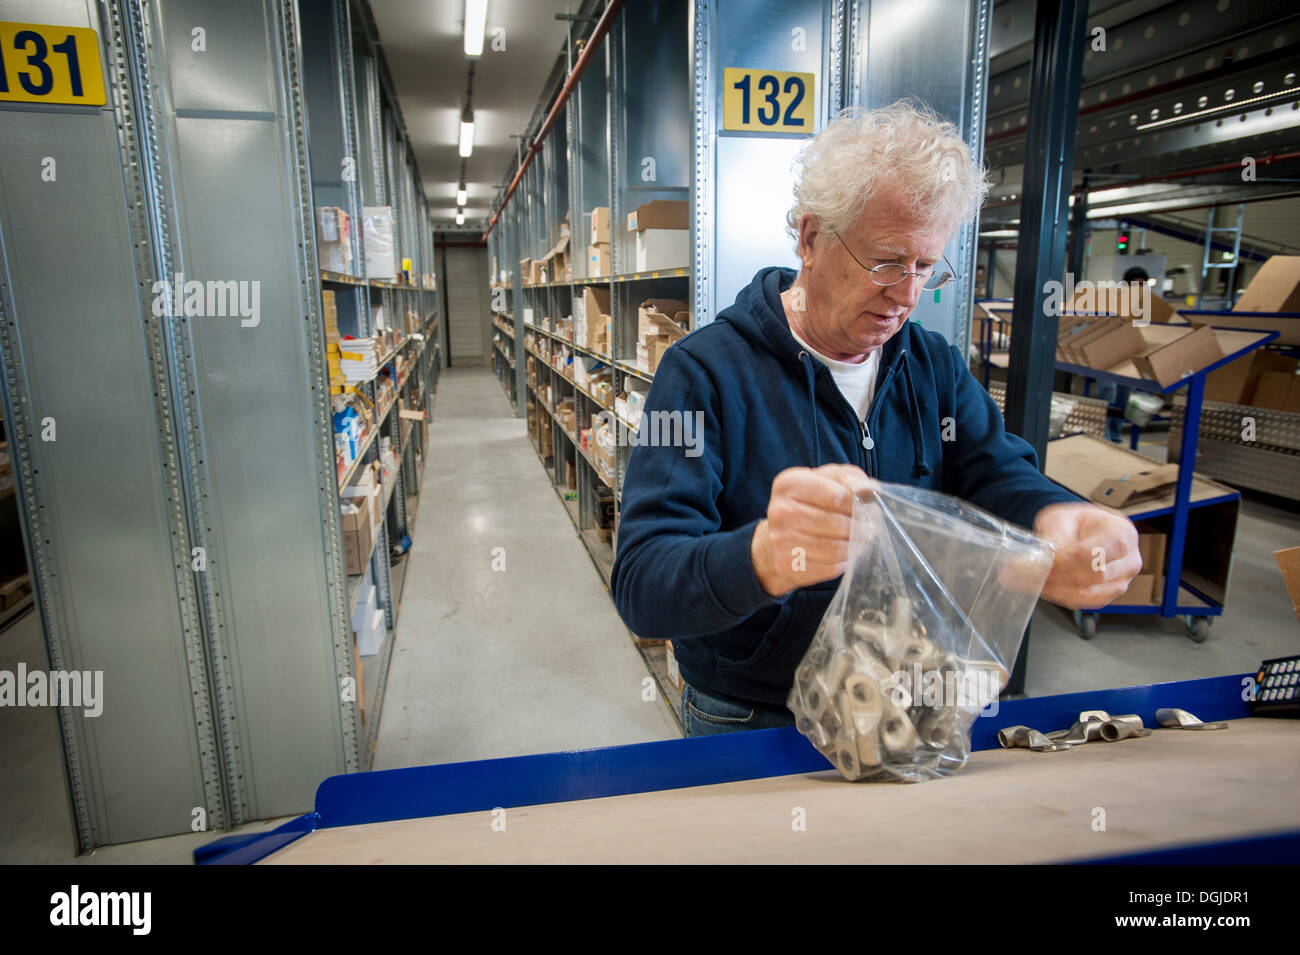 Male warehouse worker selecting item from conveyor belt - Stock Image